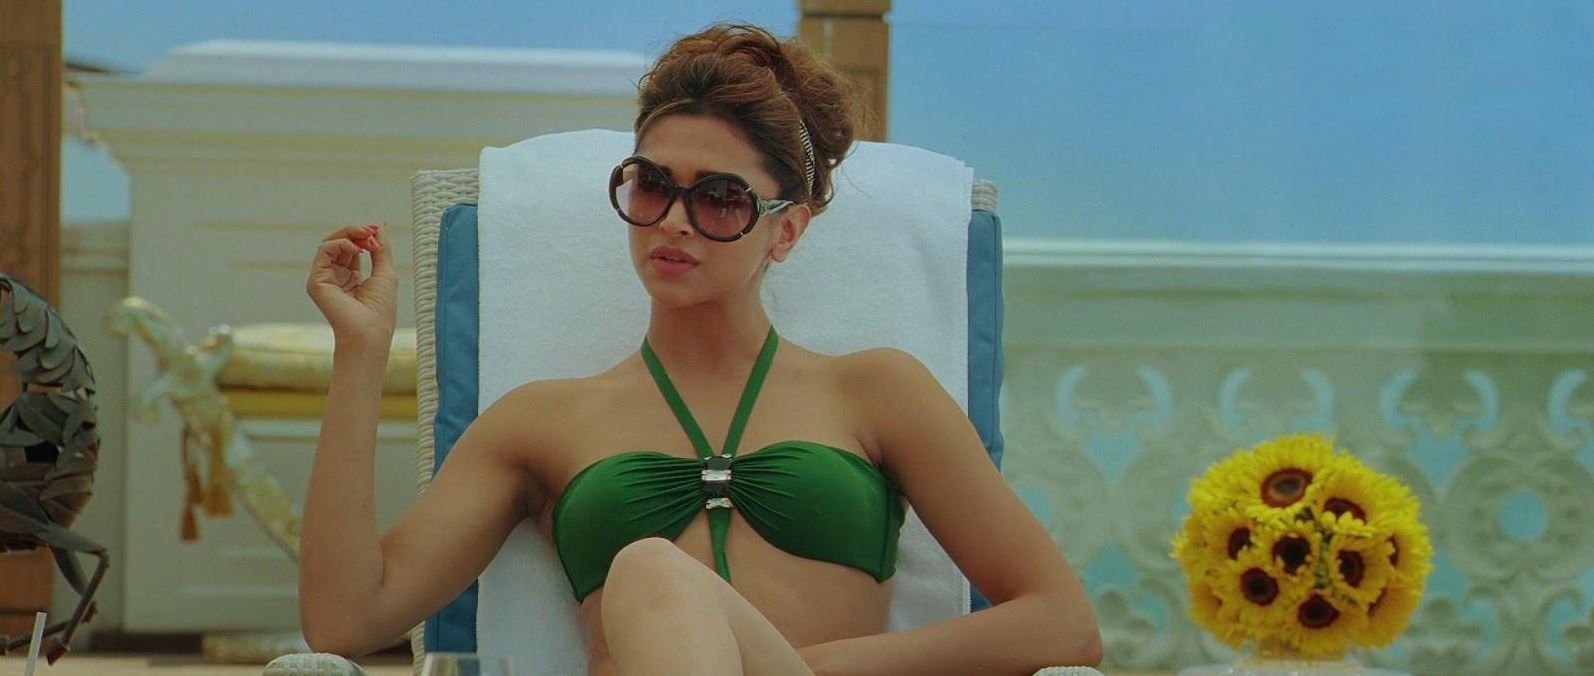 deepika-padkone-green-bikini-swimsuit-hot-round-shades-bollywood-actress-hot-sexy